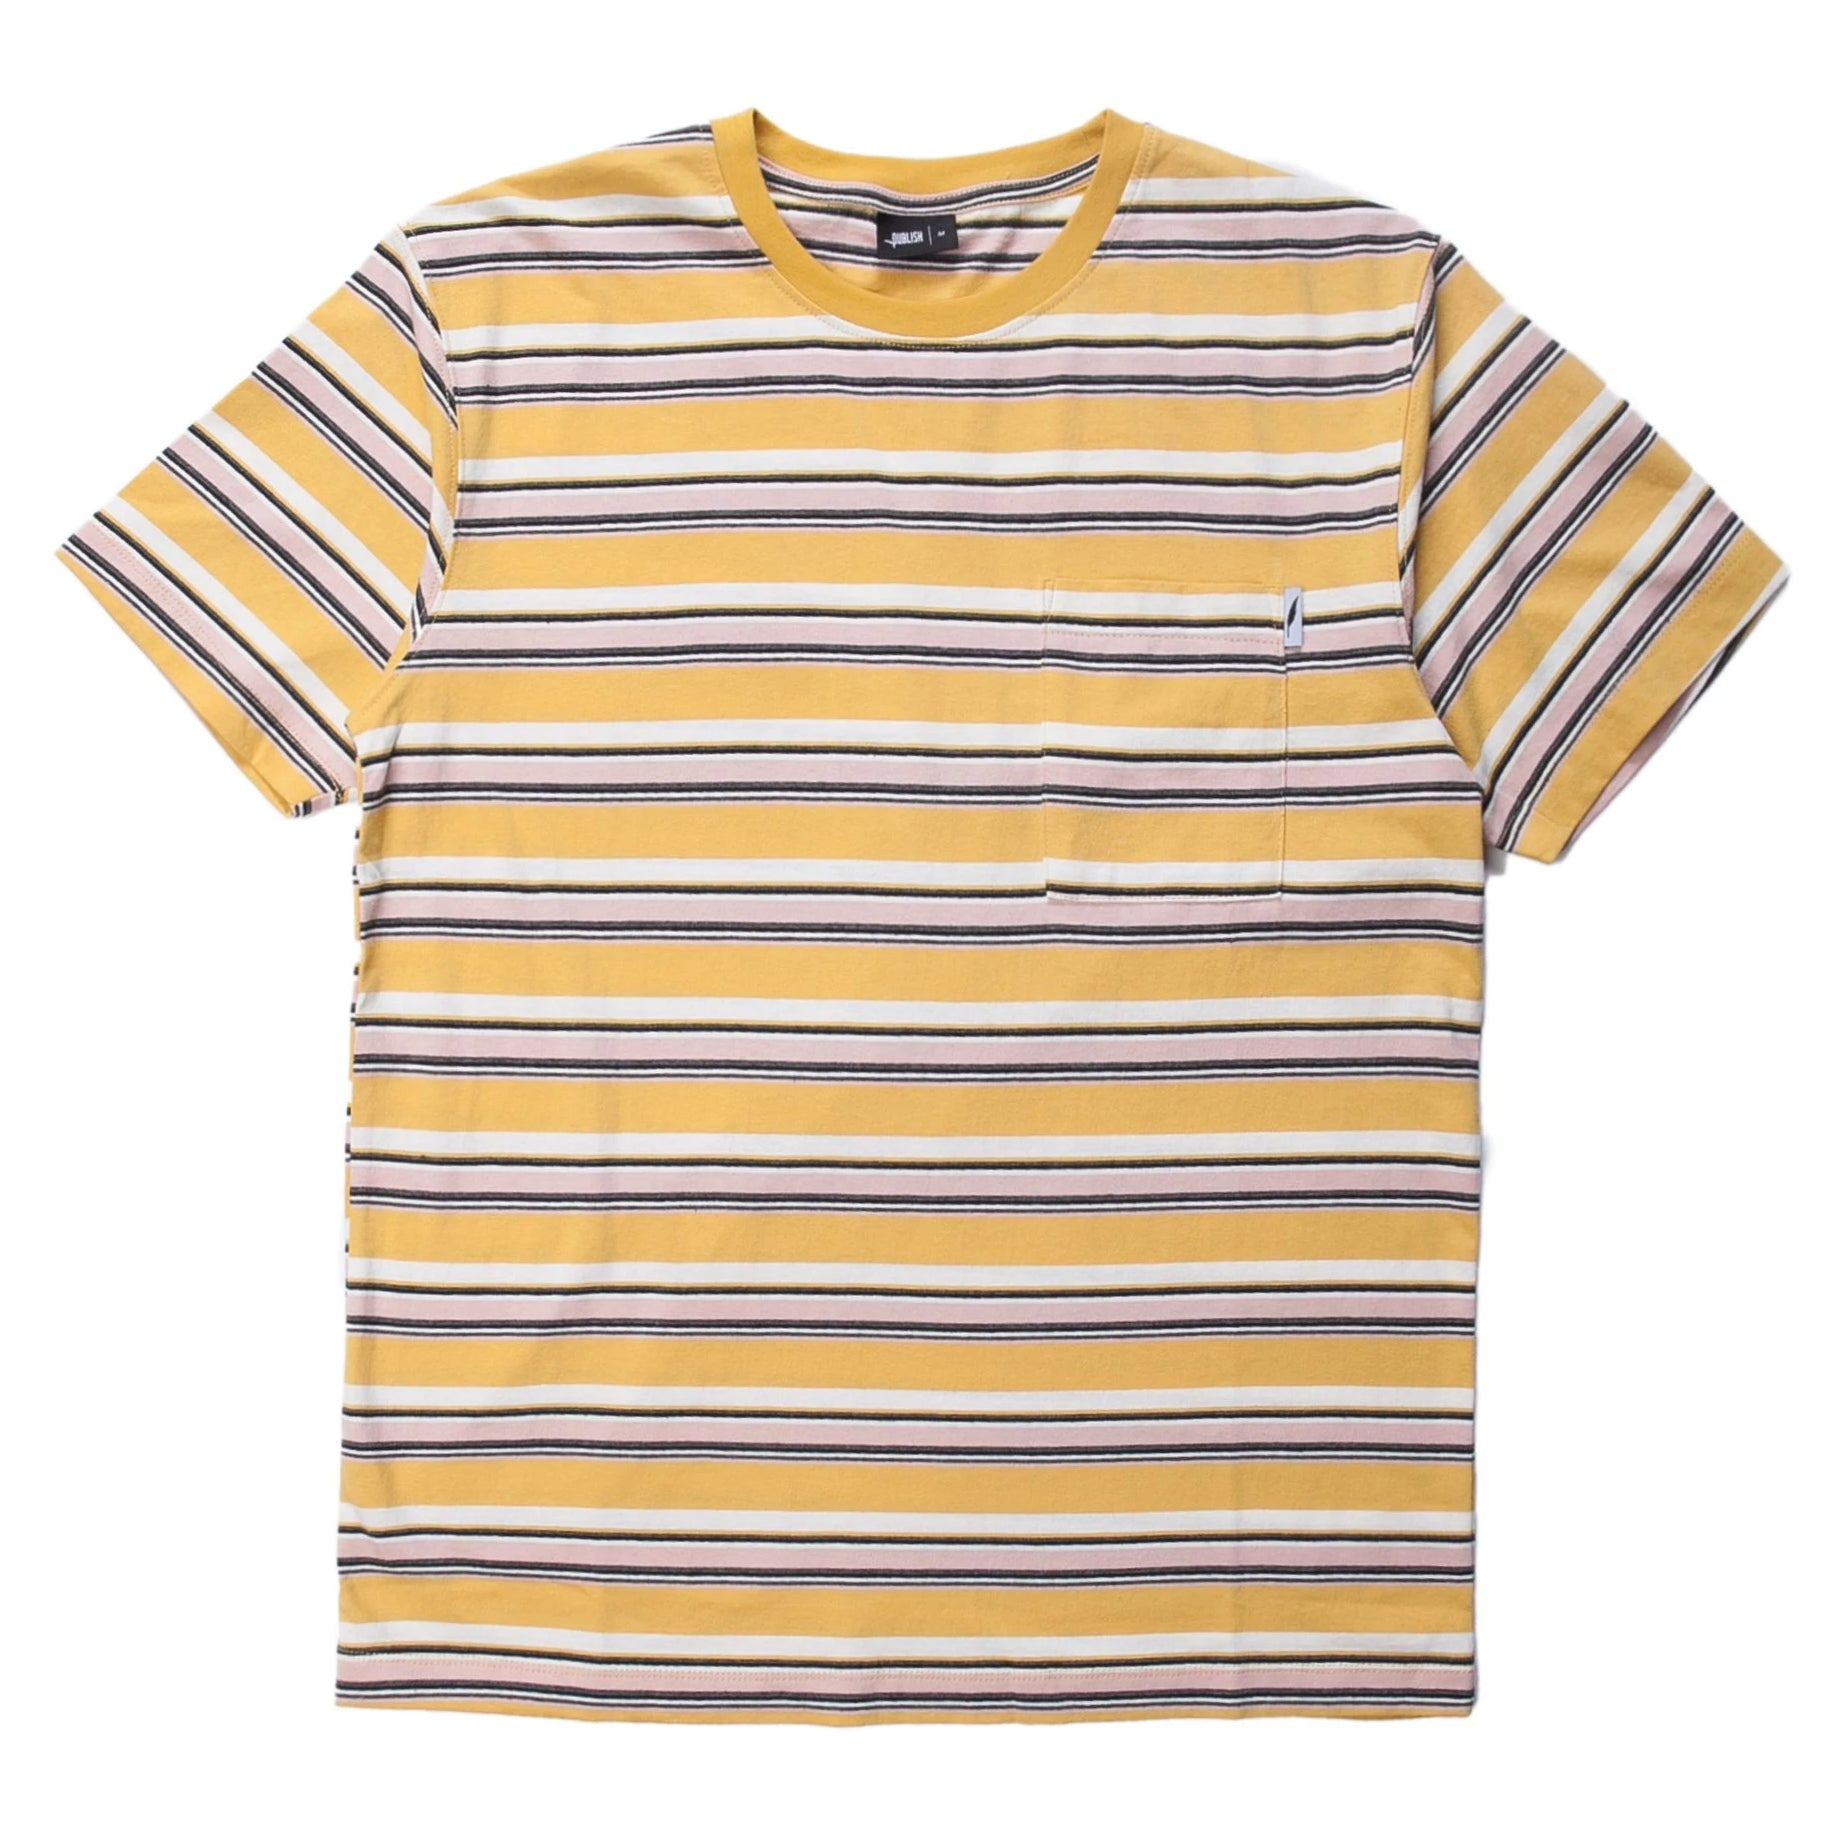 Aguie Short Sleeve Shirt (Yellow)